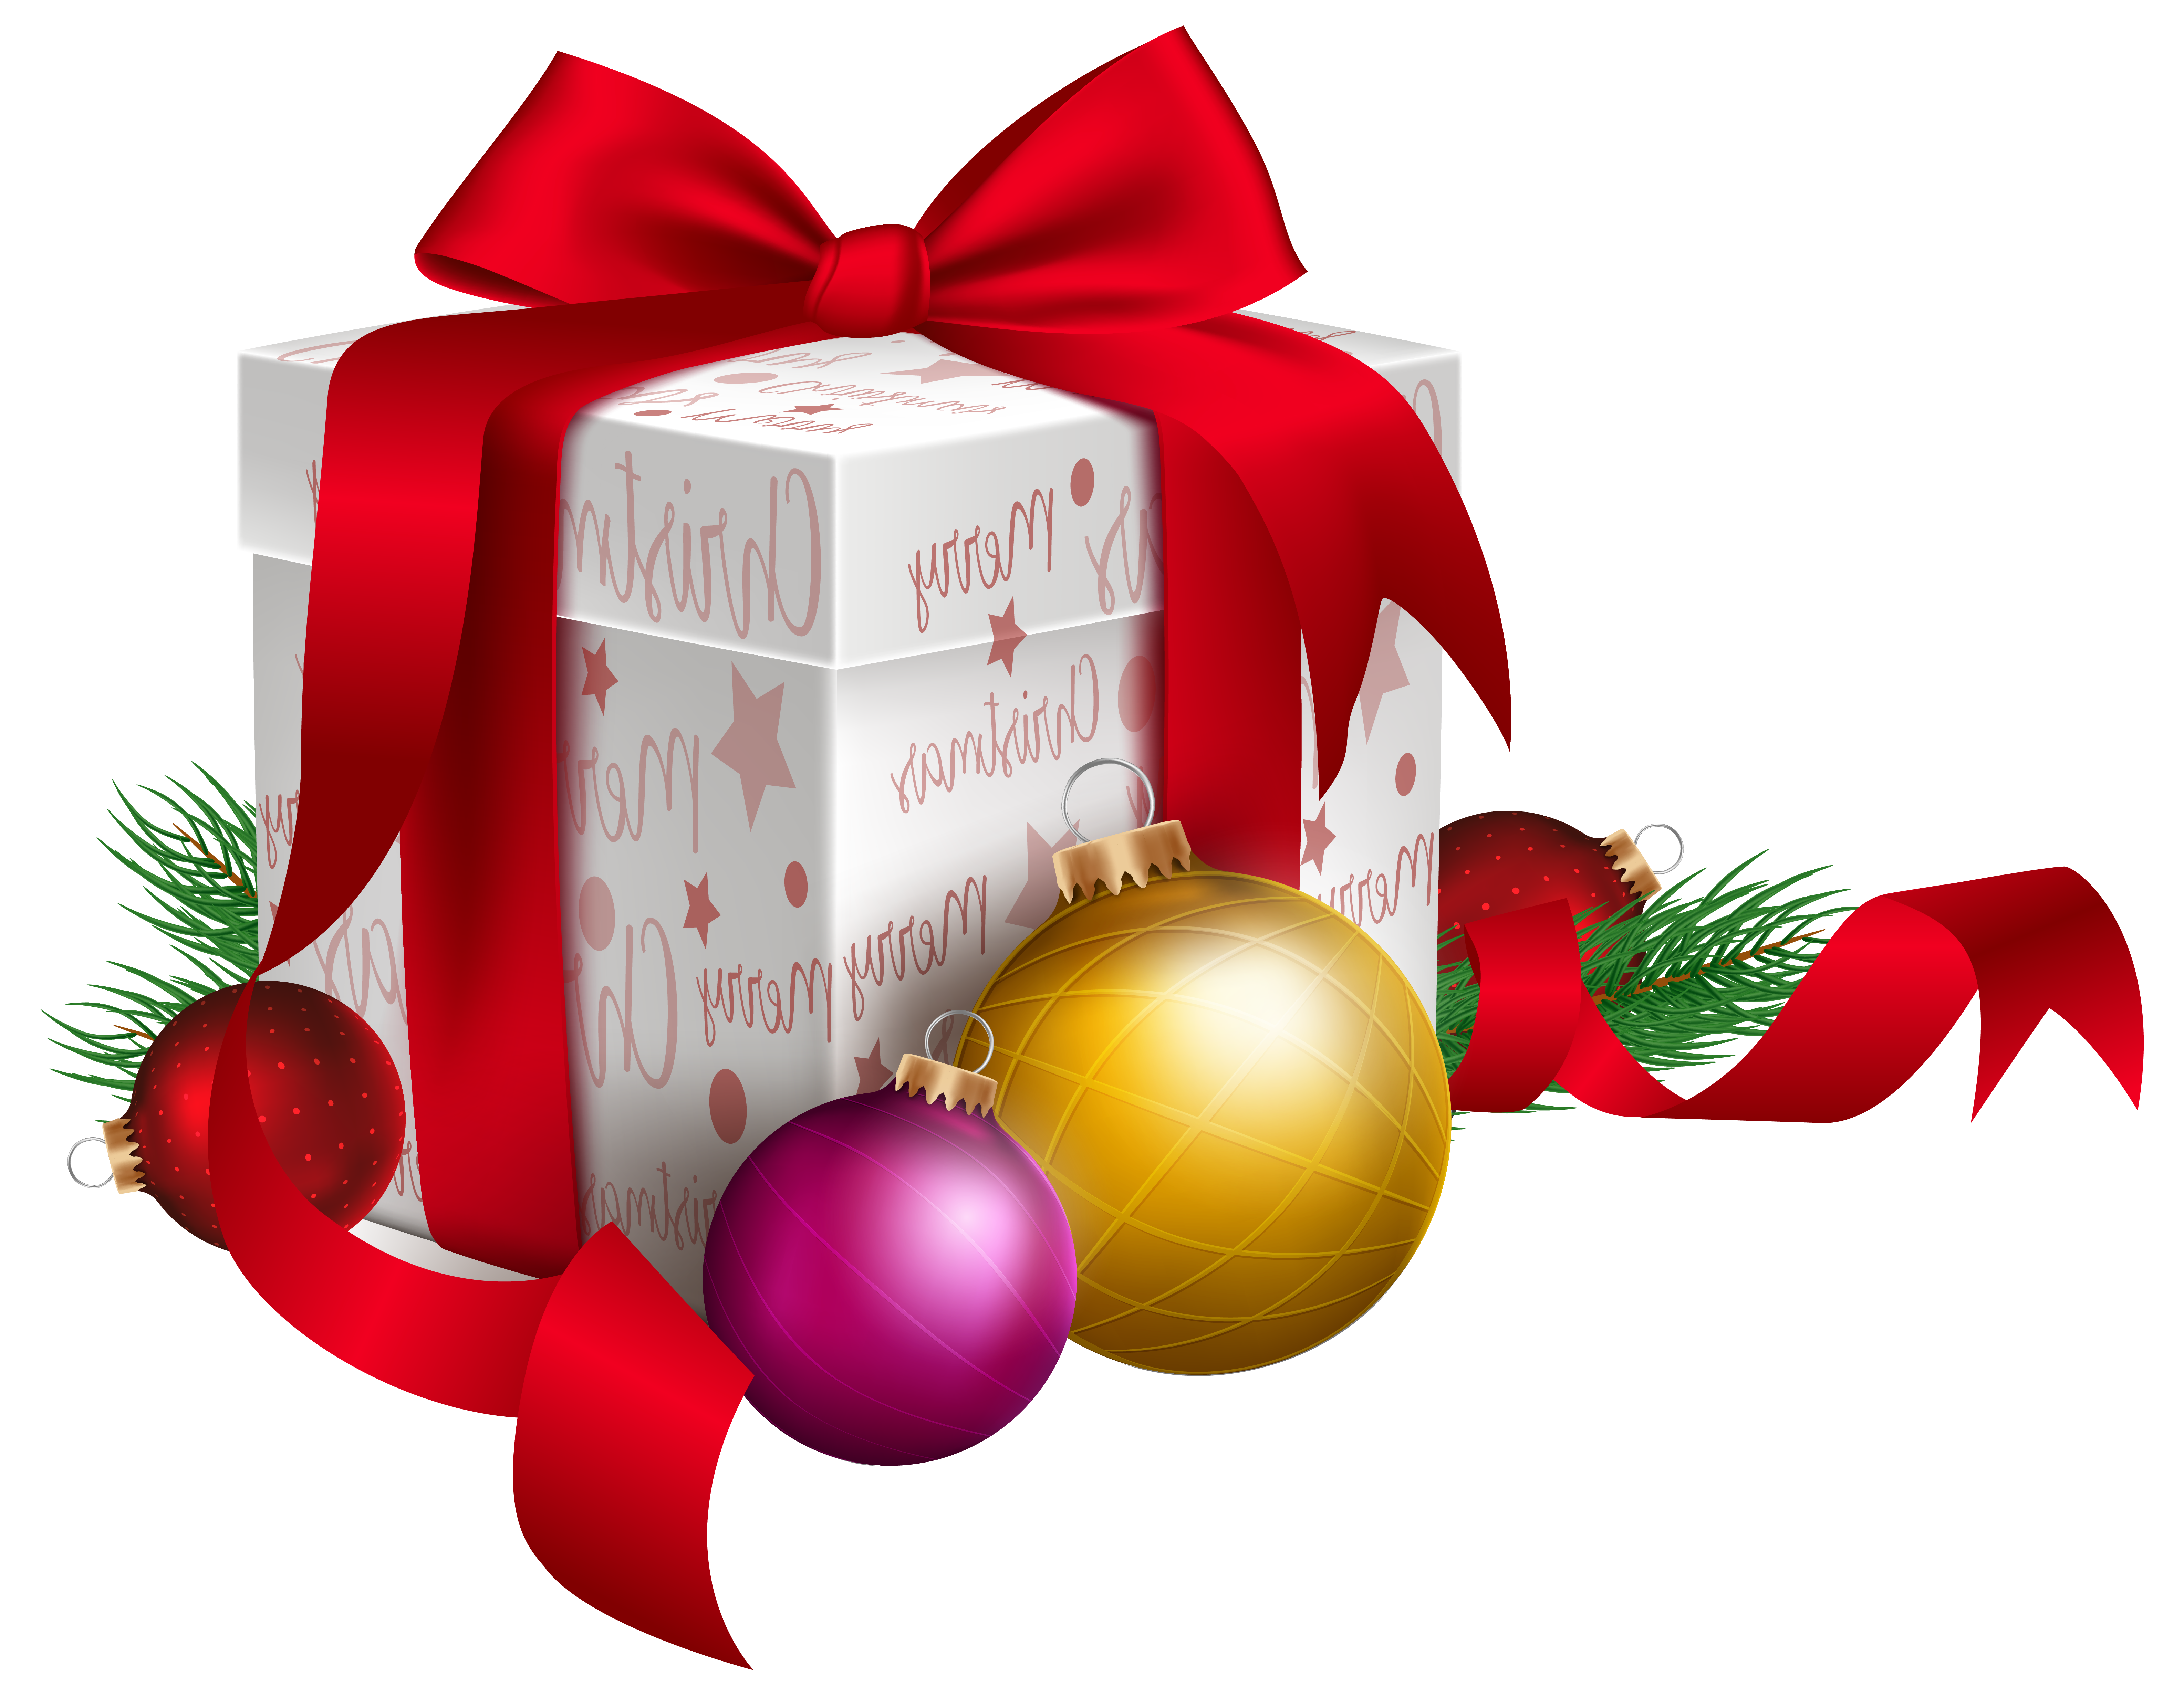 Christmas Gift and Ornaments Transparent PNG Clip Art Image.